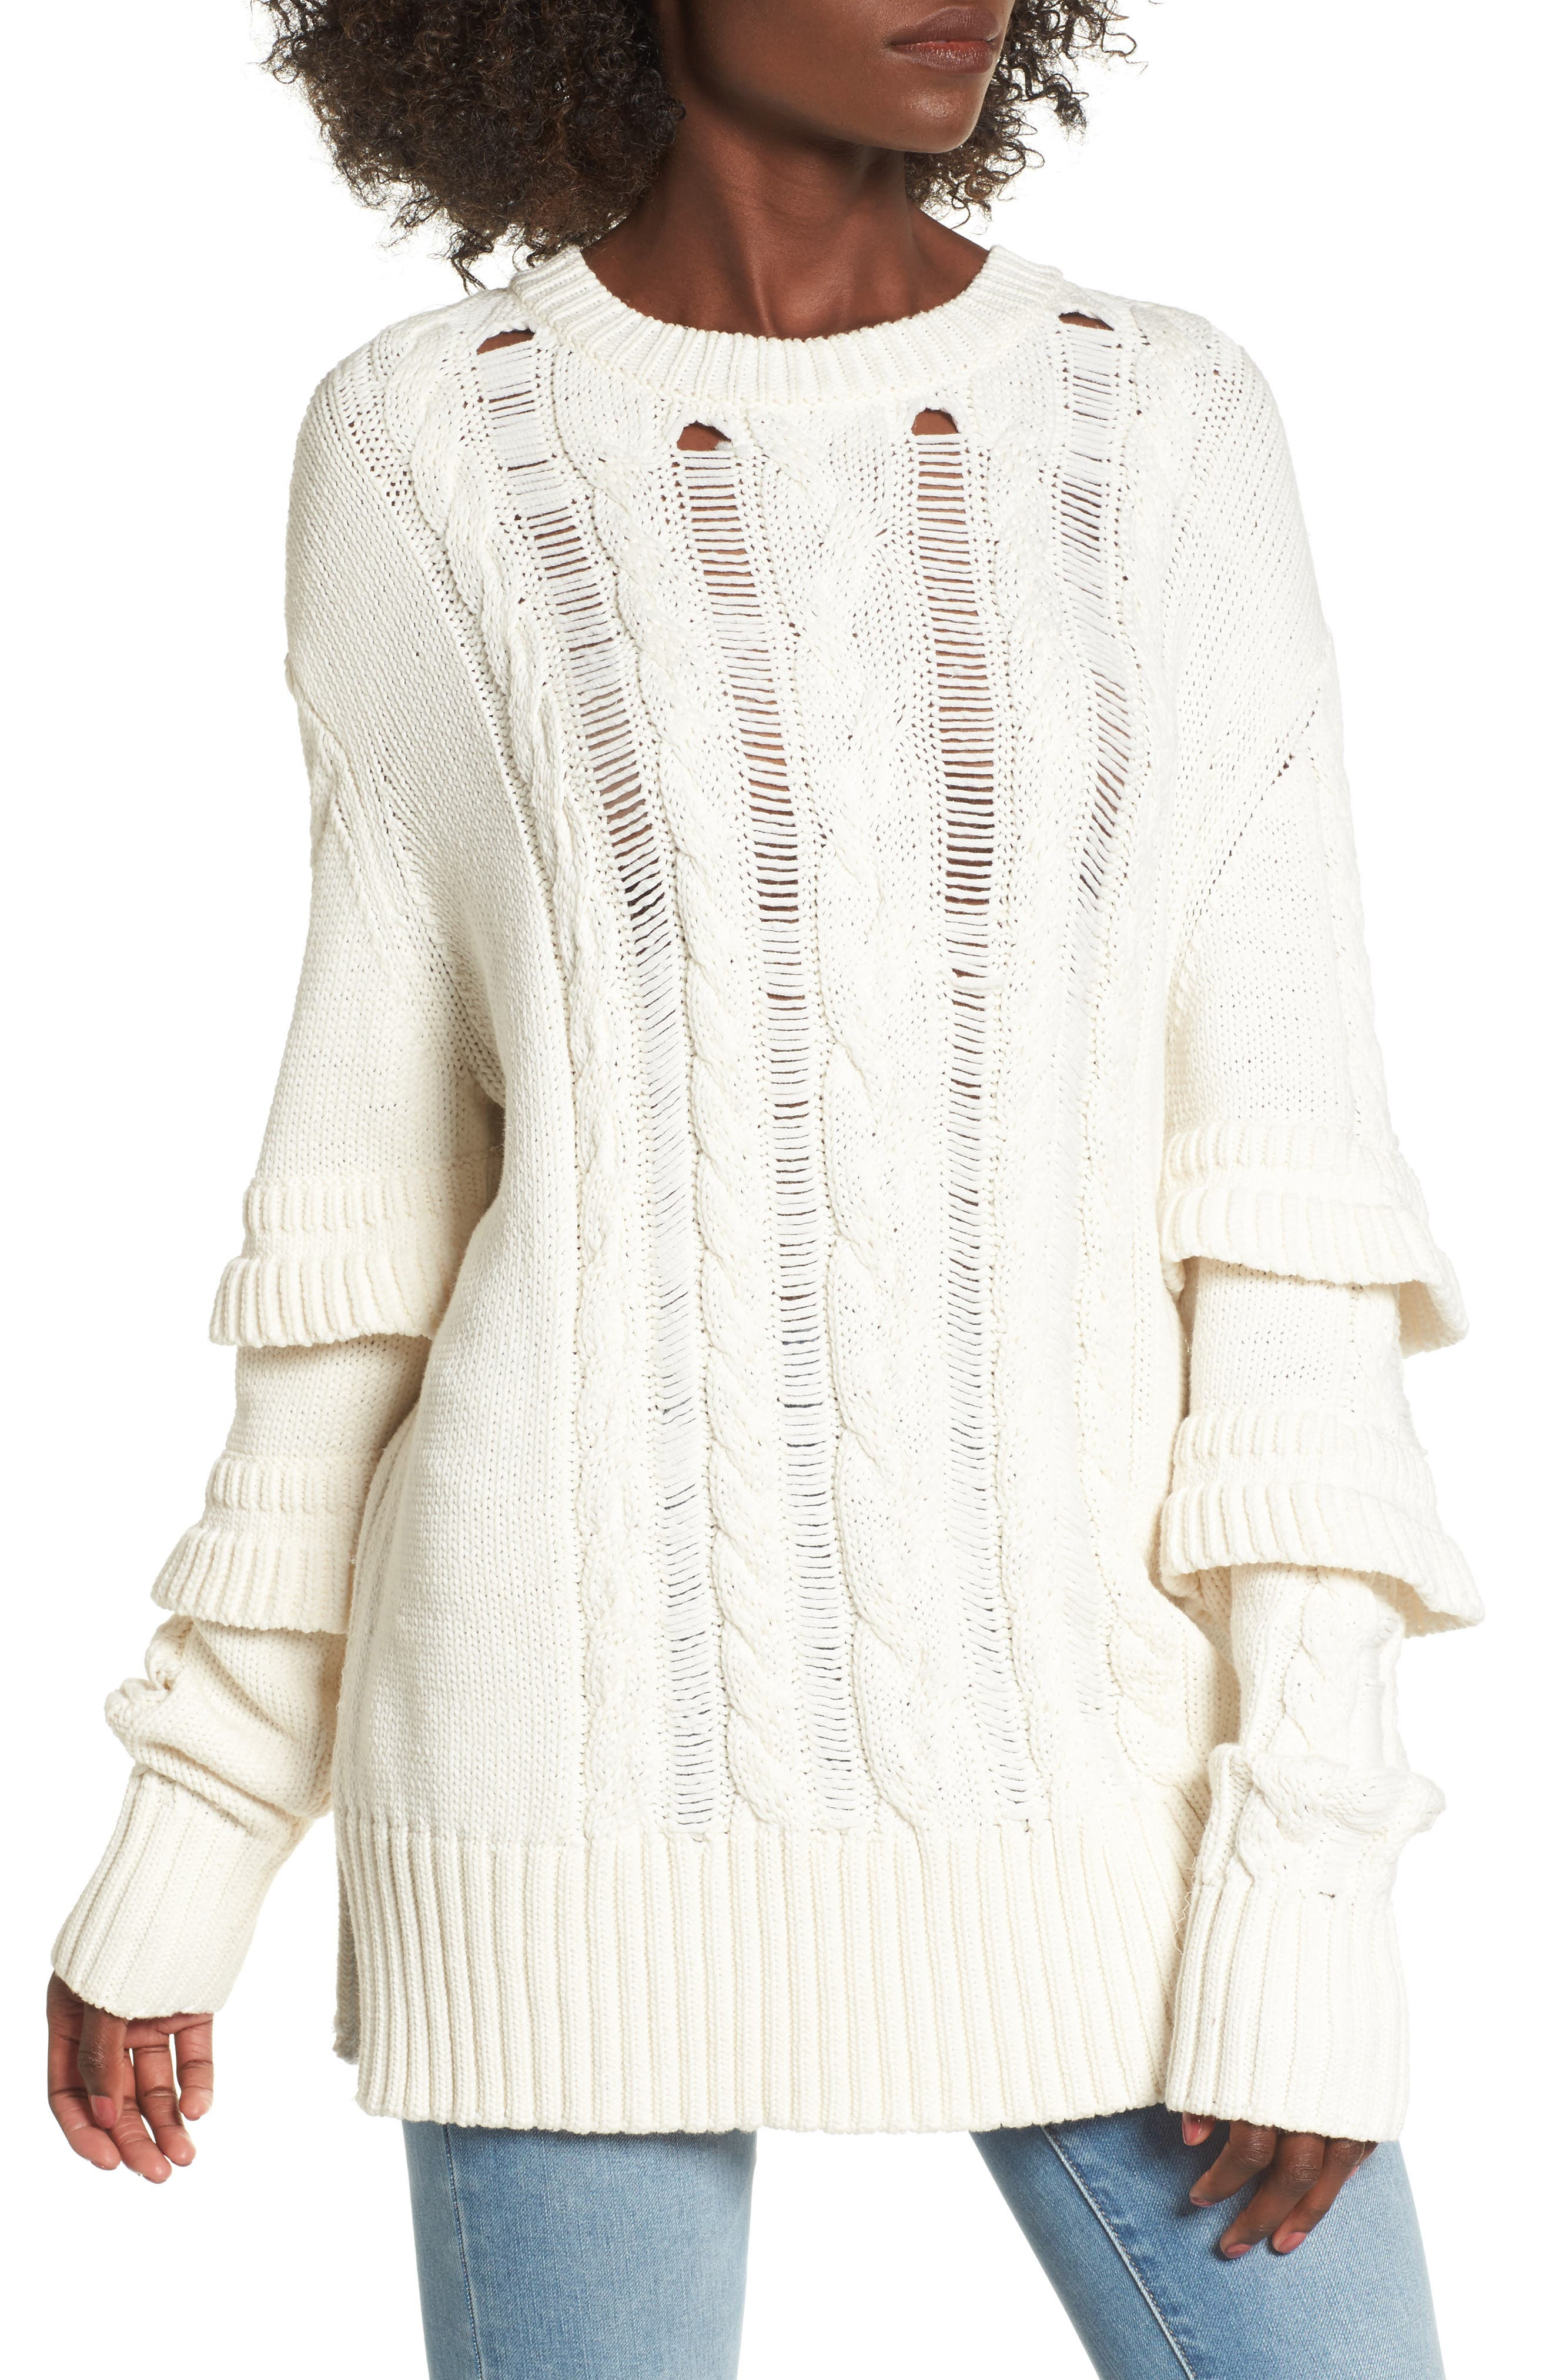 Ruffle Sleeve Cable Knit Sweater,                             Main thumbnail 1, color,                             Just For Kicks/ Ivory